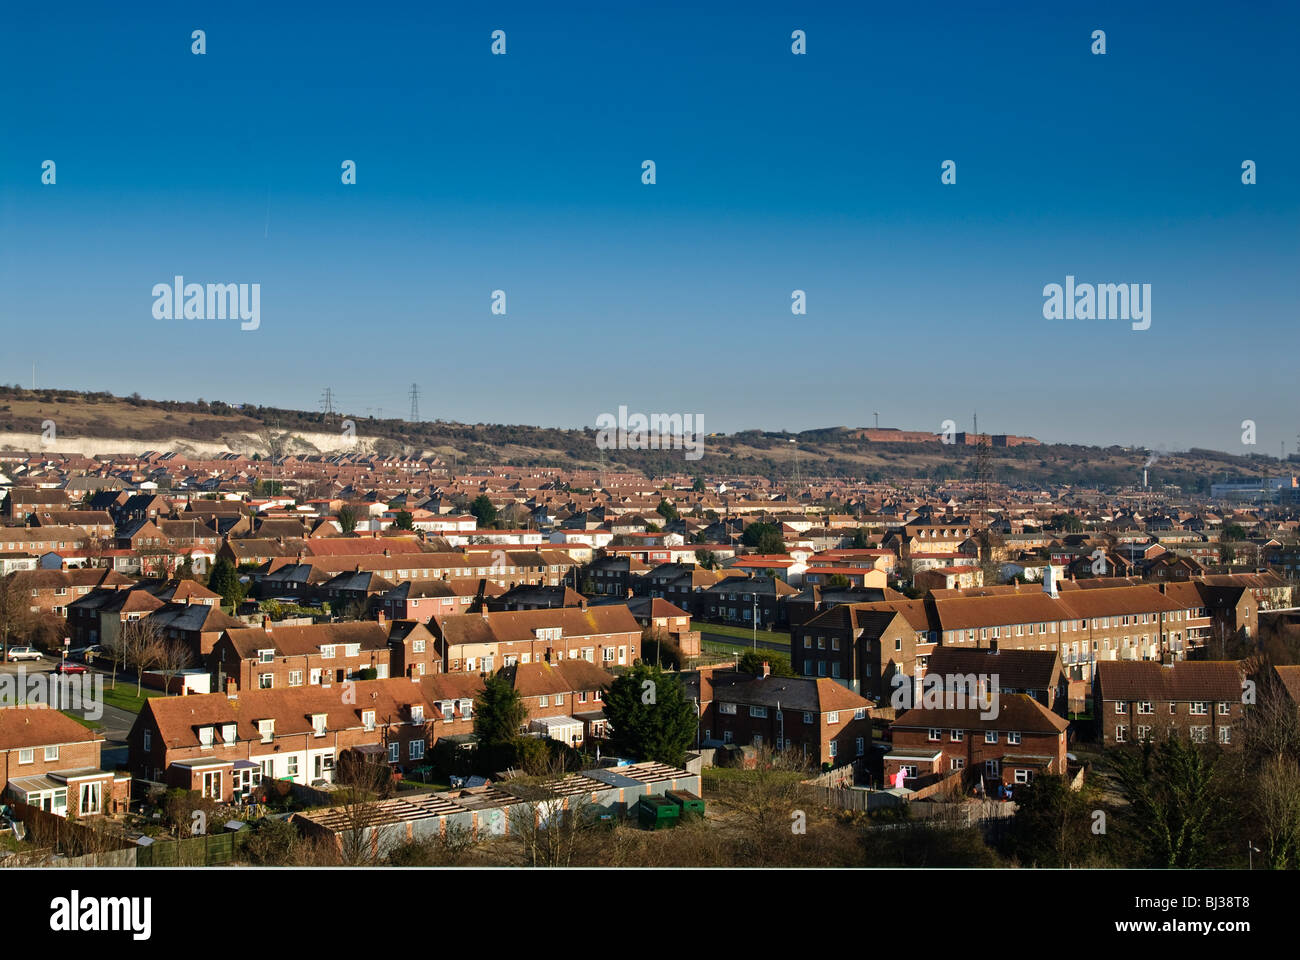 High view of council houses estate near Portsmouth Stock Photo